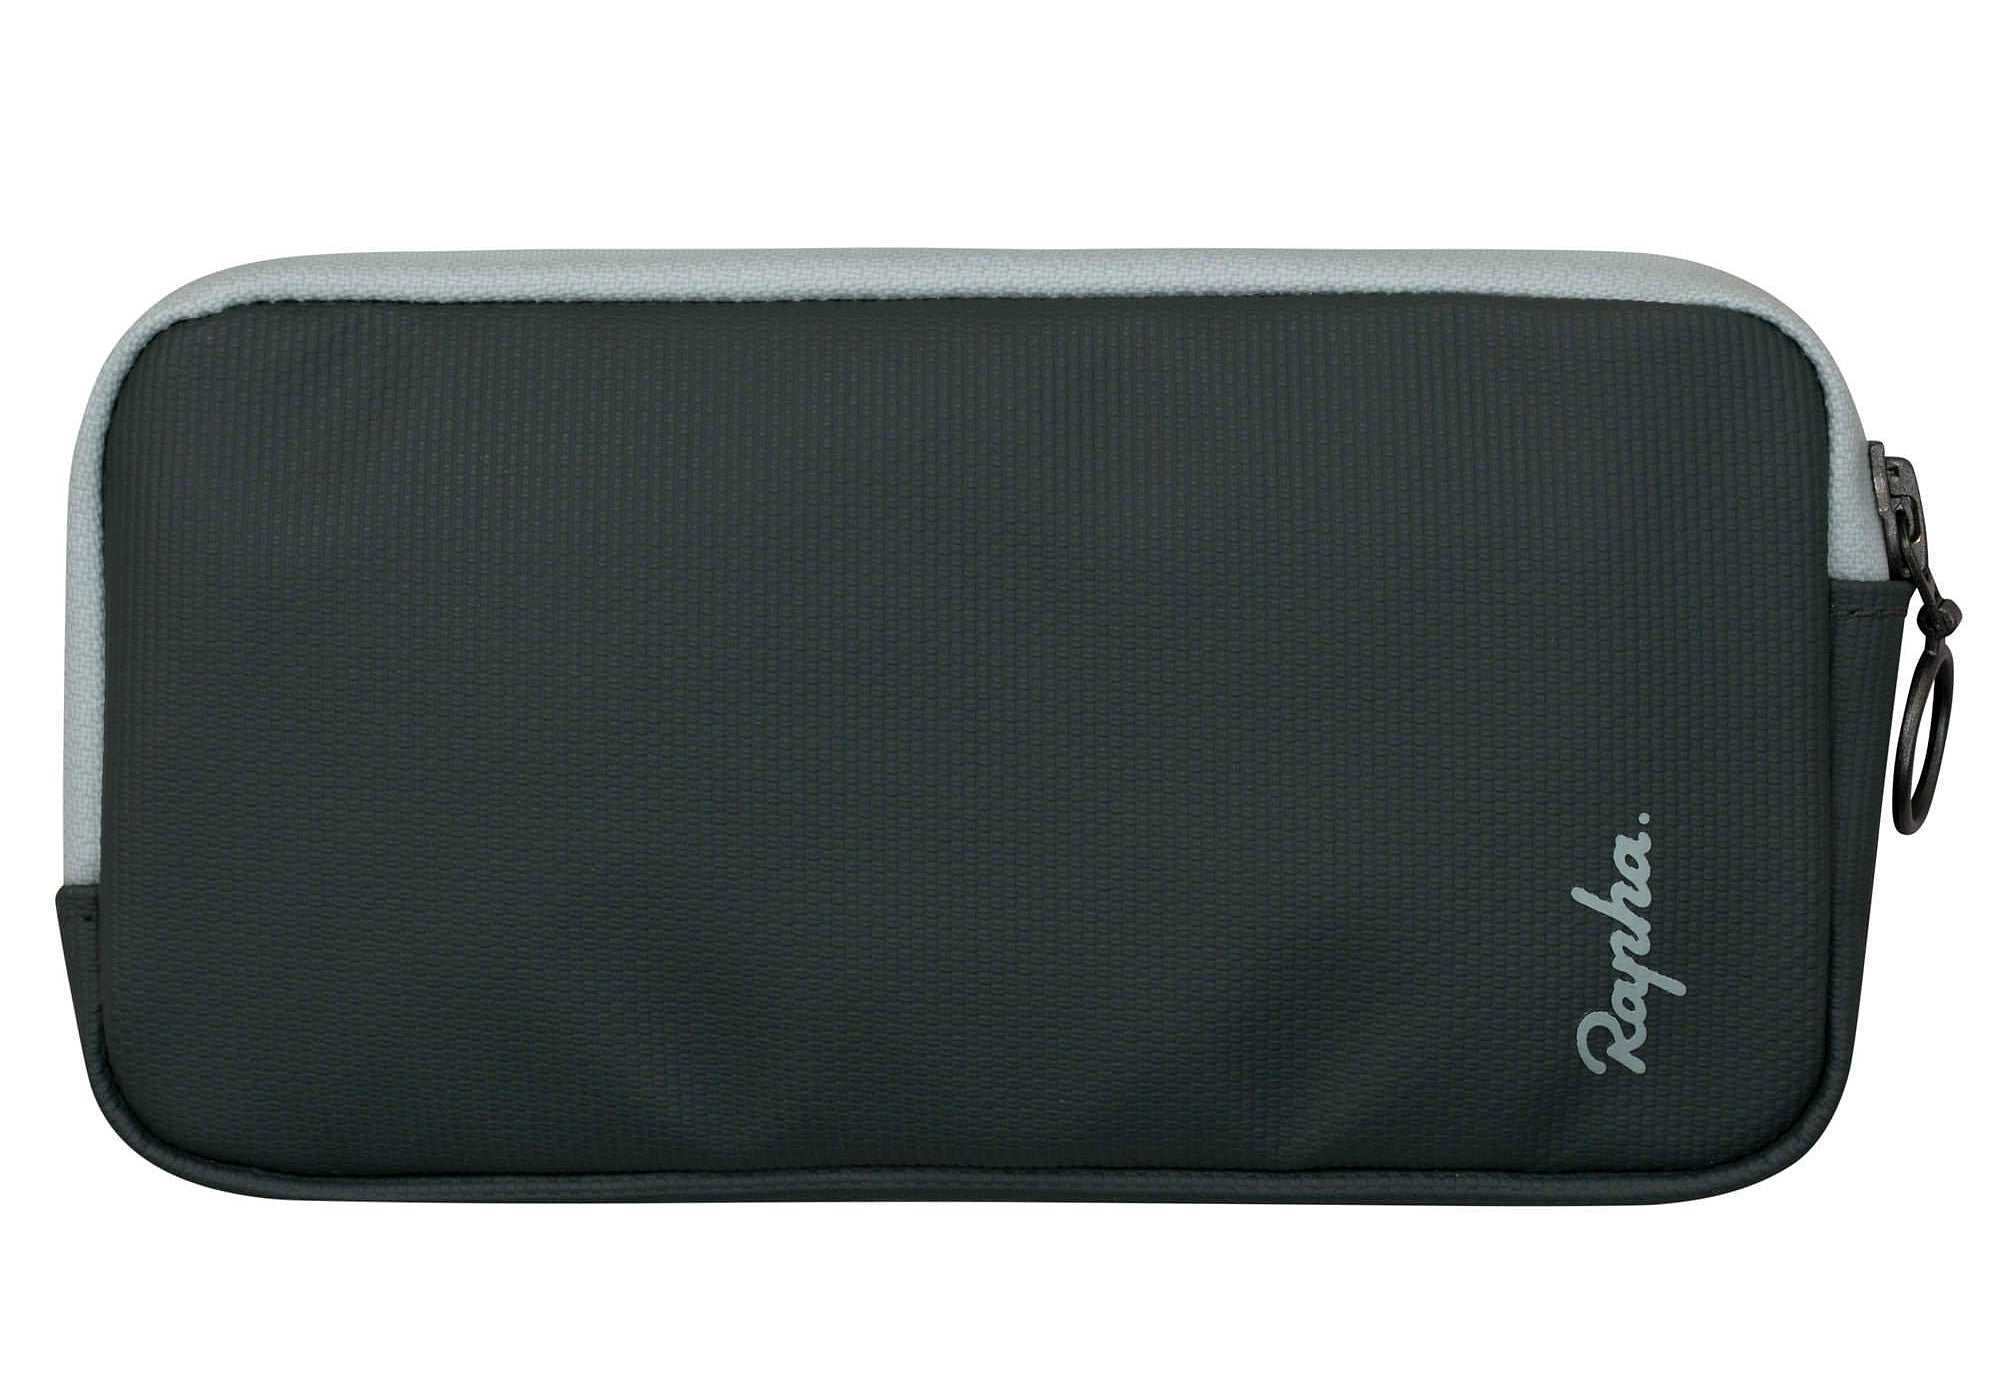 Rapha Rainproof Essentials Case - Dark Green Large